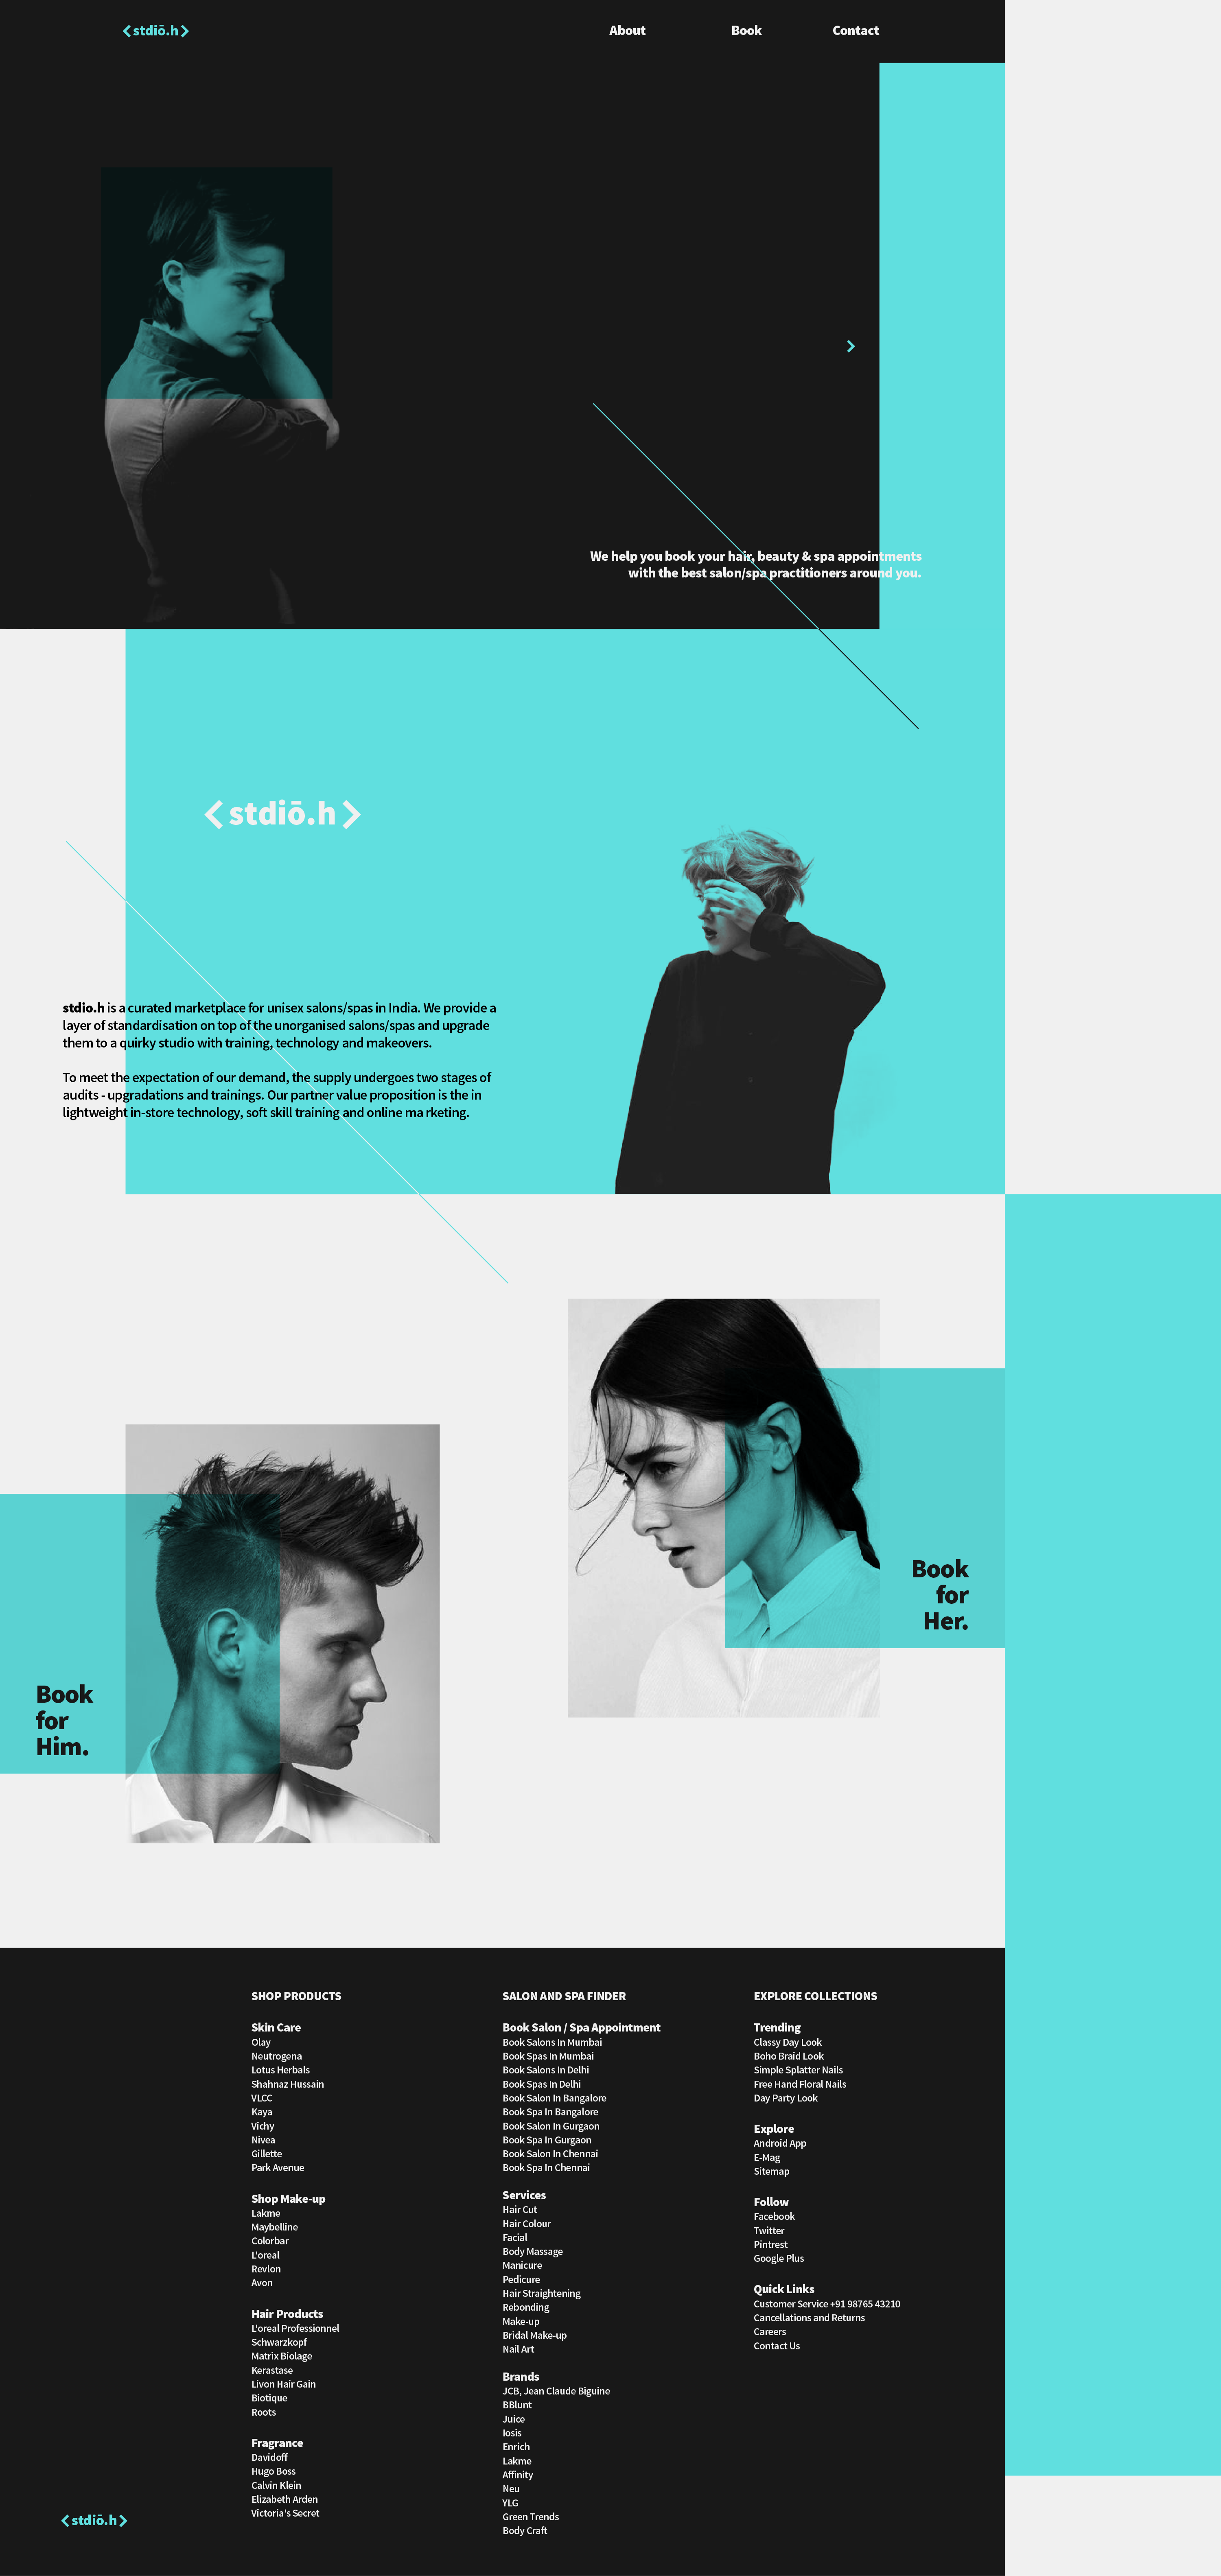 Stdio H On Behance Visual Communication Design Reference Spa Services